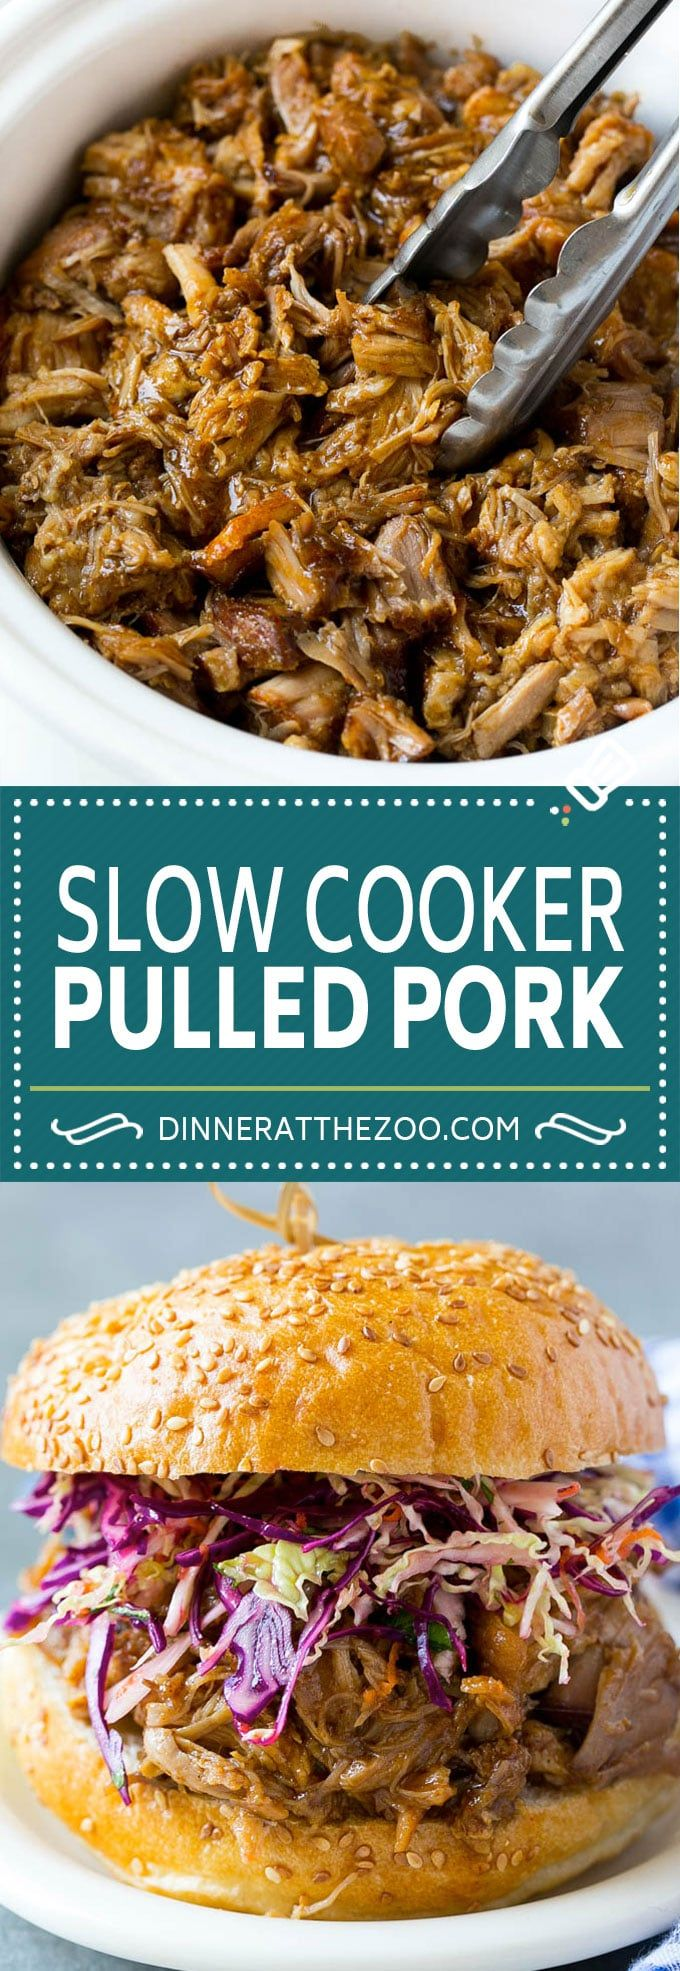 Slow Cooker Pulled Pork Sandwiches Recipe | Slow Cooker Pulled Pork Recipe | Crockpot Pulled Pork | Slow Cooker Sandwiches